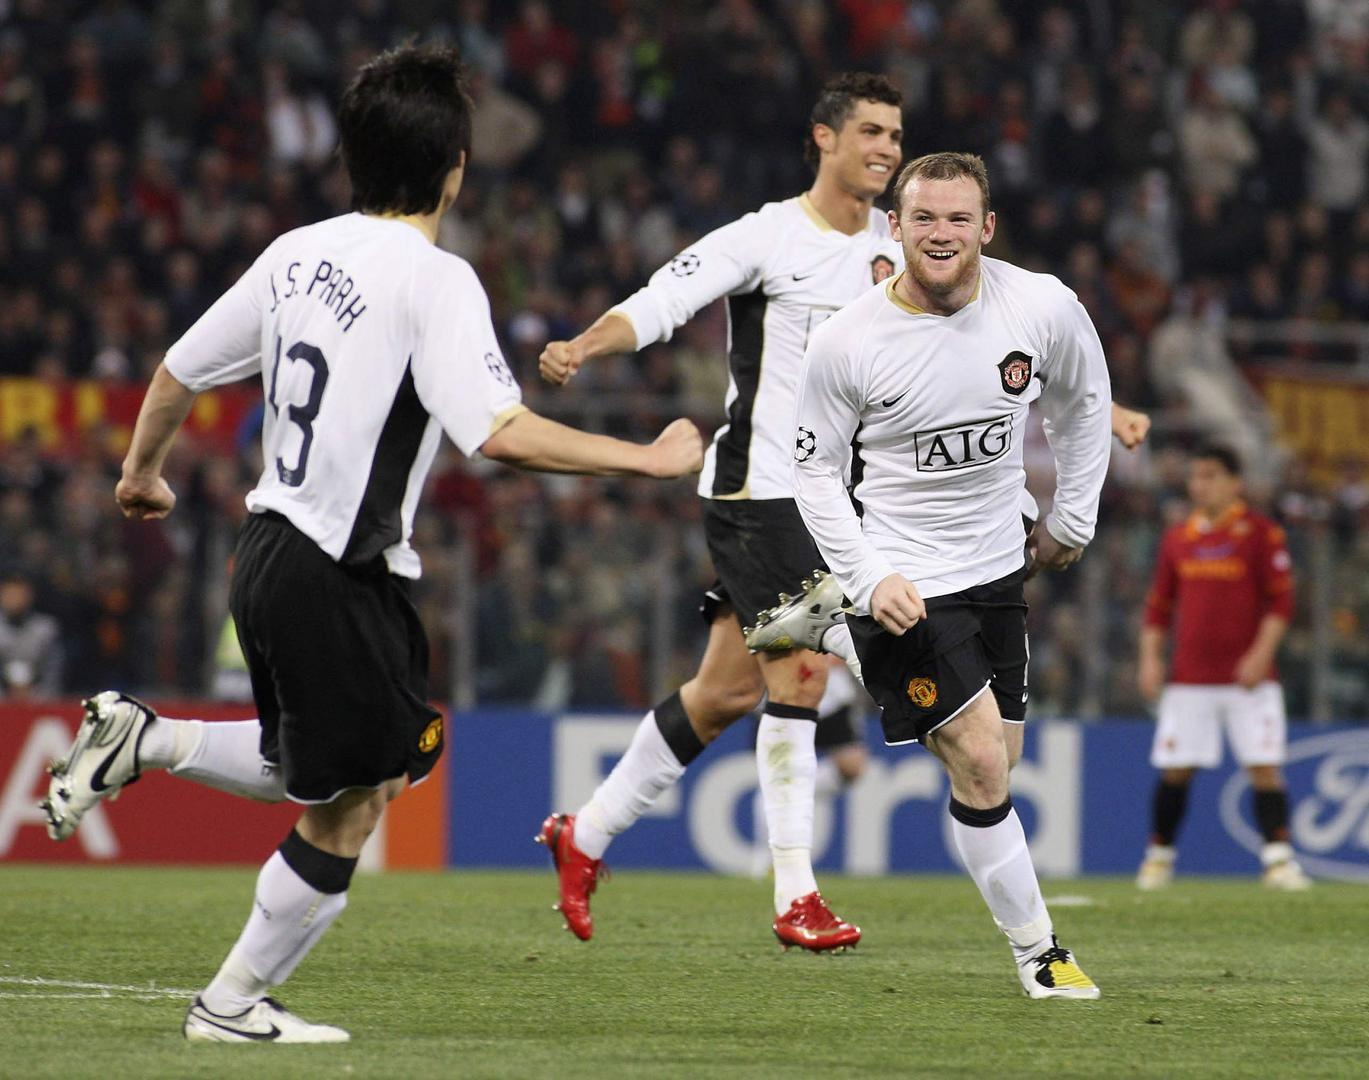 Wayne Rooney celebrates a goal against AS Roma in 2008 with Ji-sung Park and Cristiano Ronaldo.